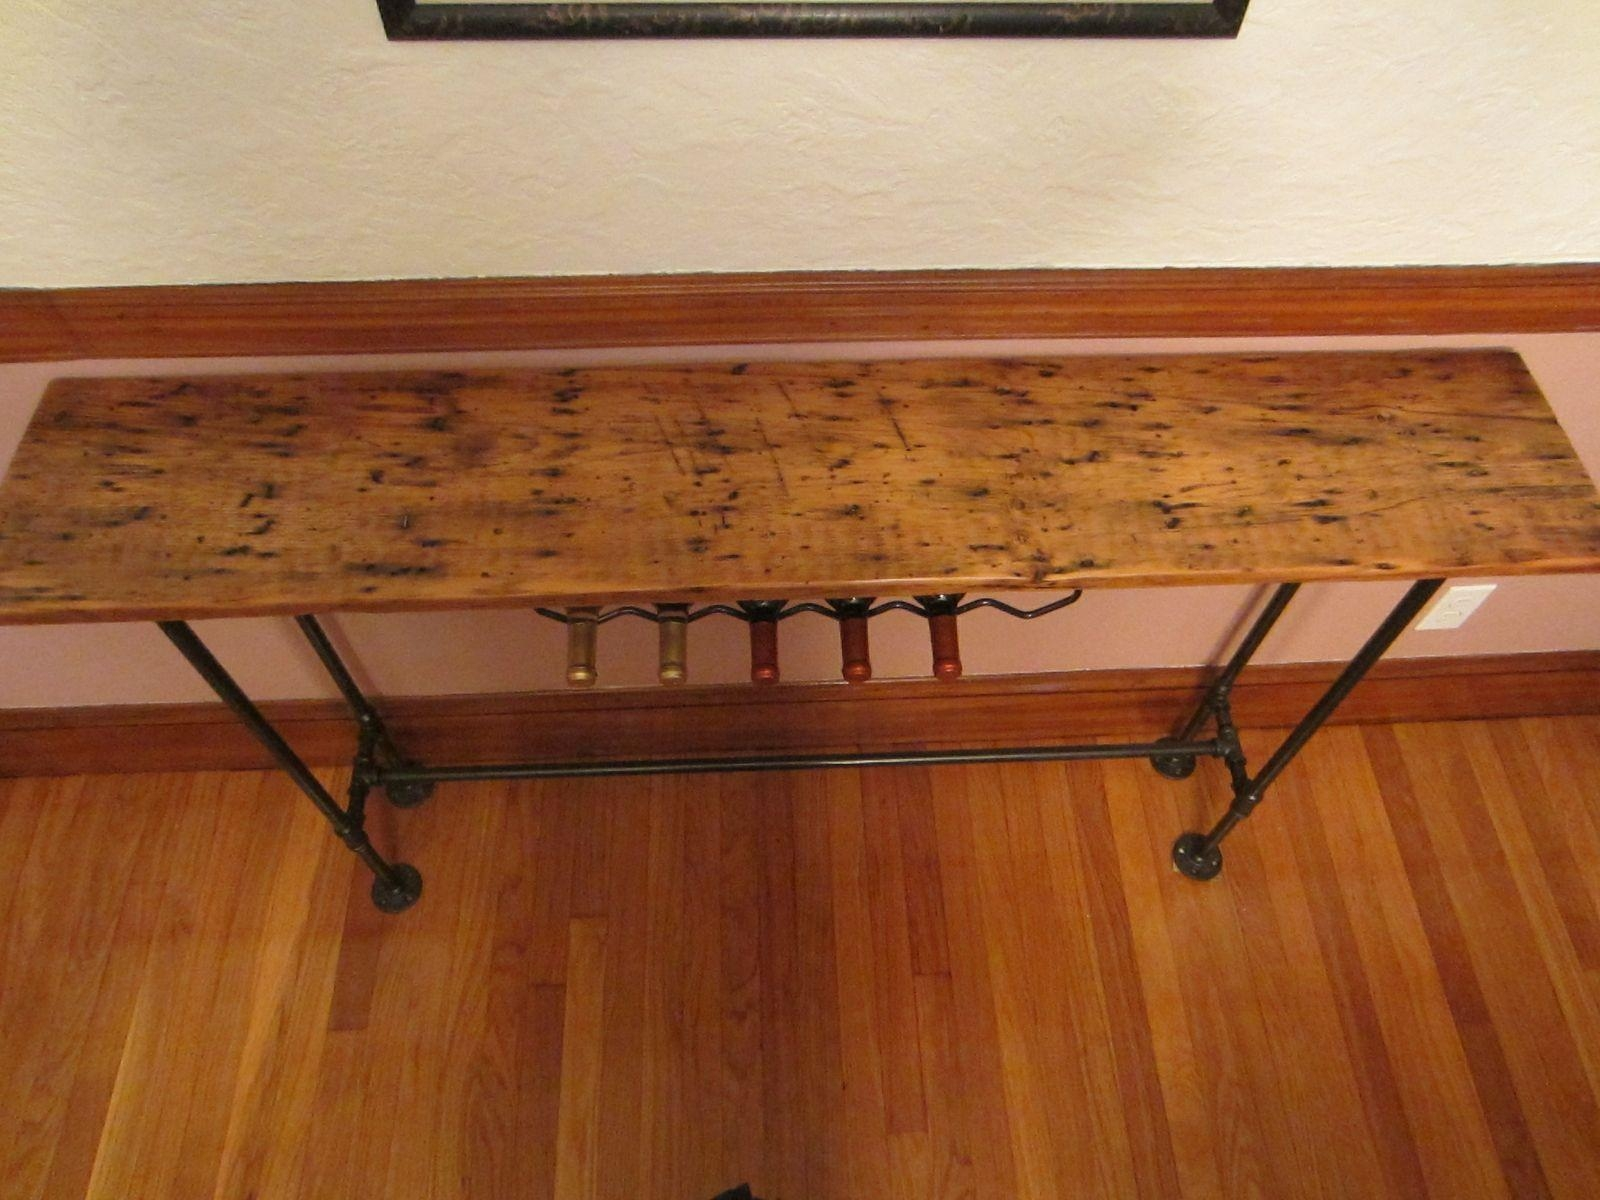 Reclaimed Wood Furniture And Barnwood Furniture | Custommade Throughout Barnwood Sofa Tables (View 15 of 20)